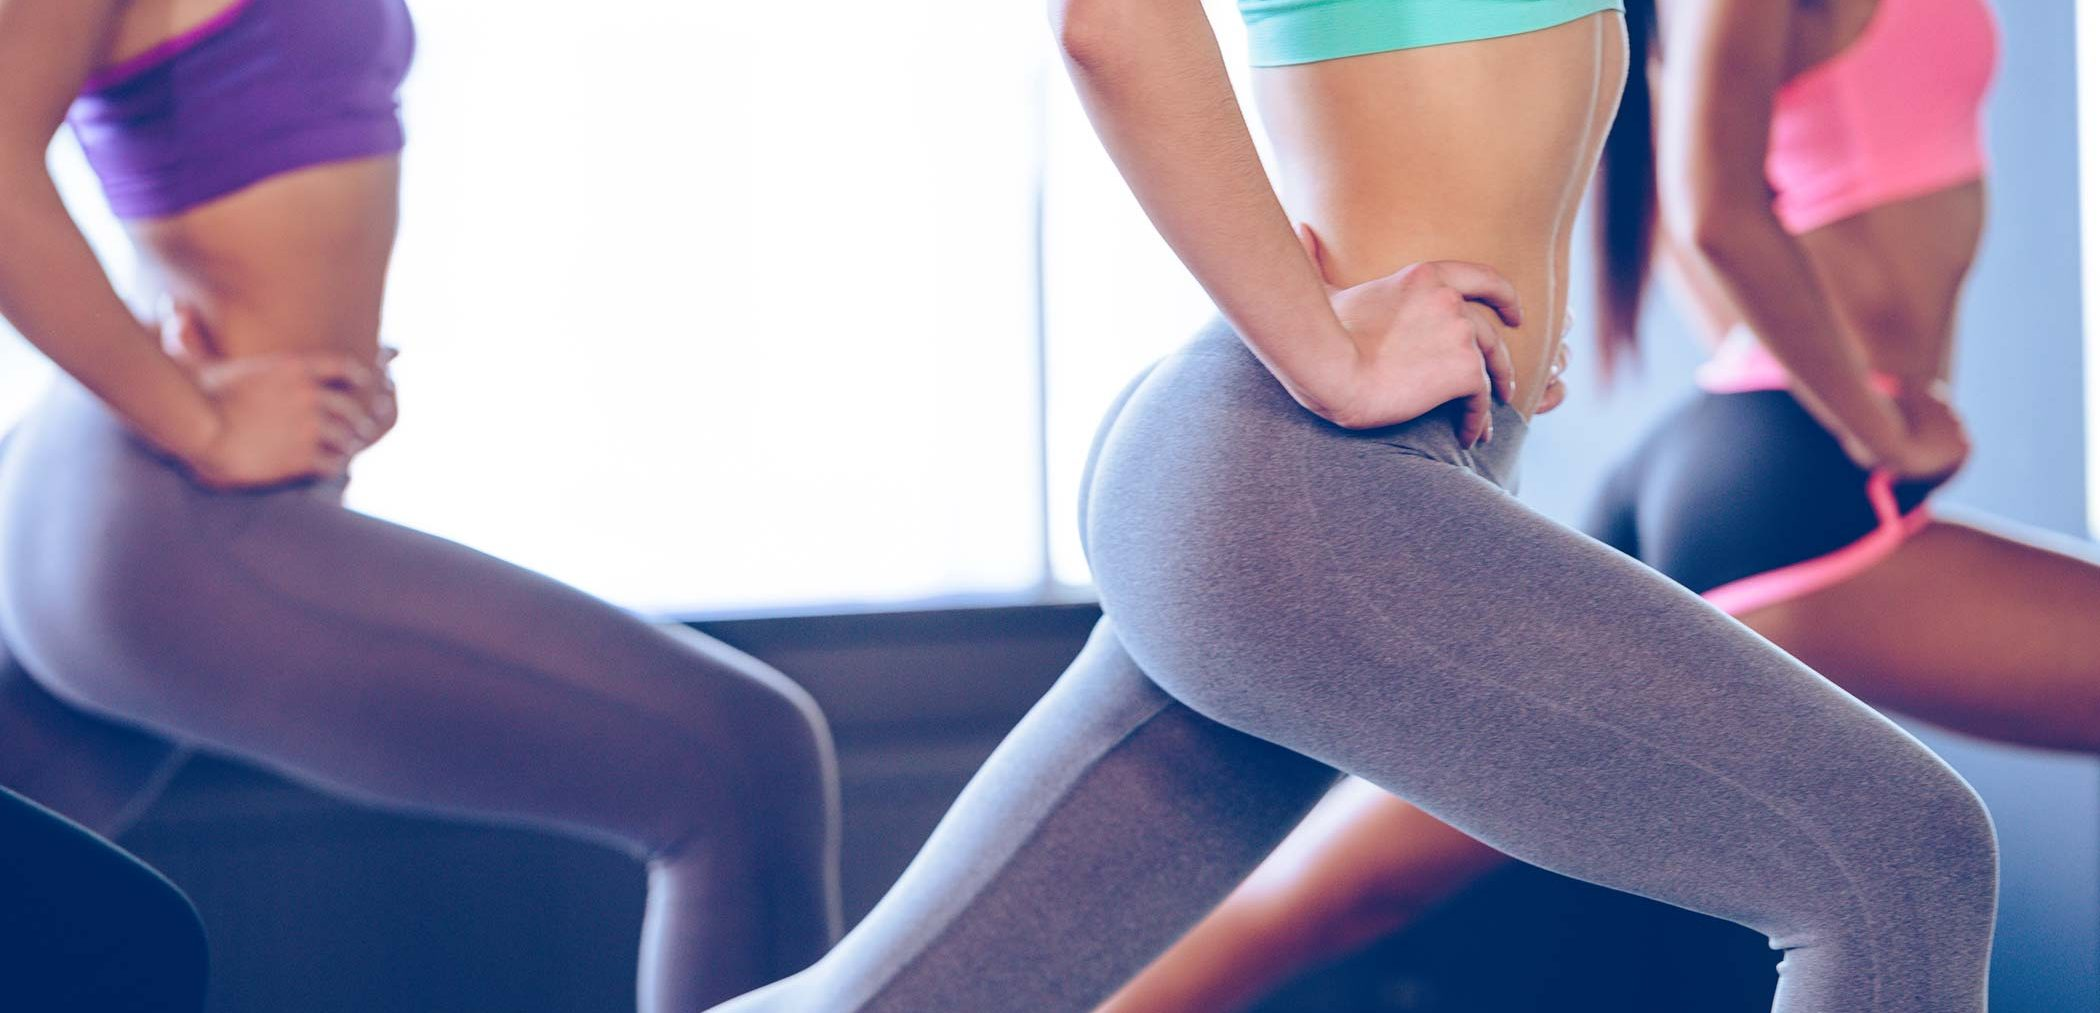 The Secret to Thin Thighs and Firm Bums